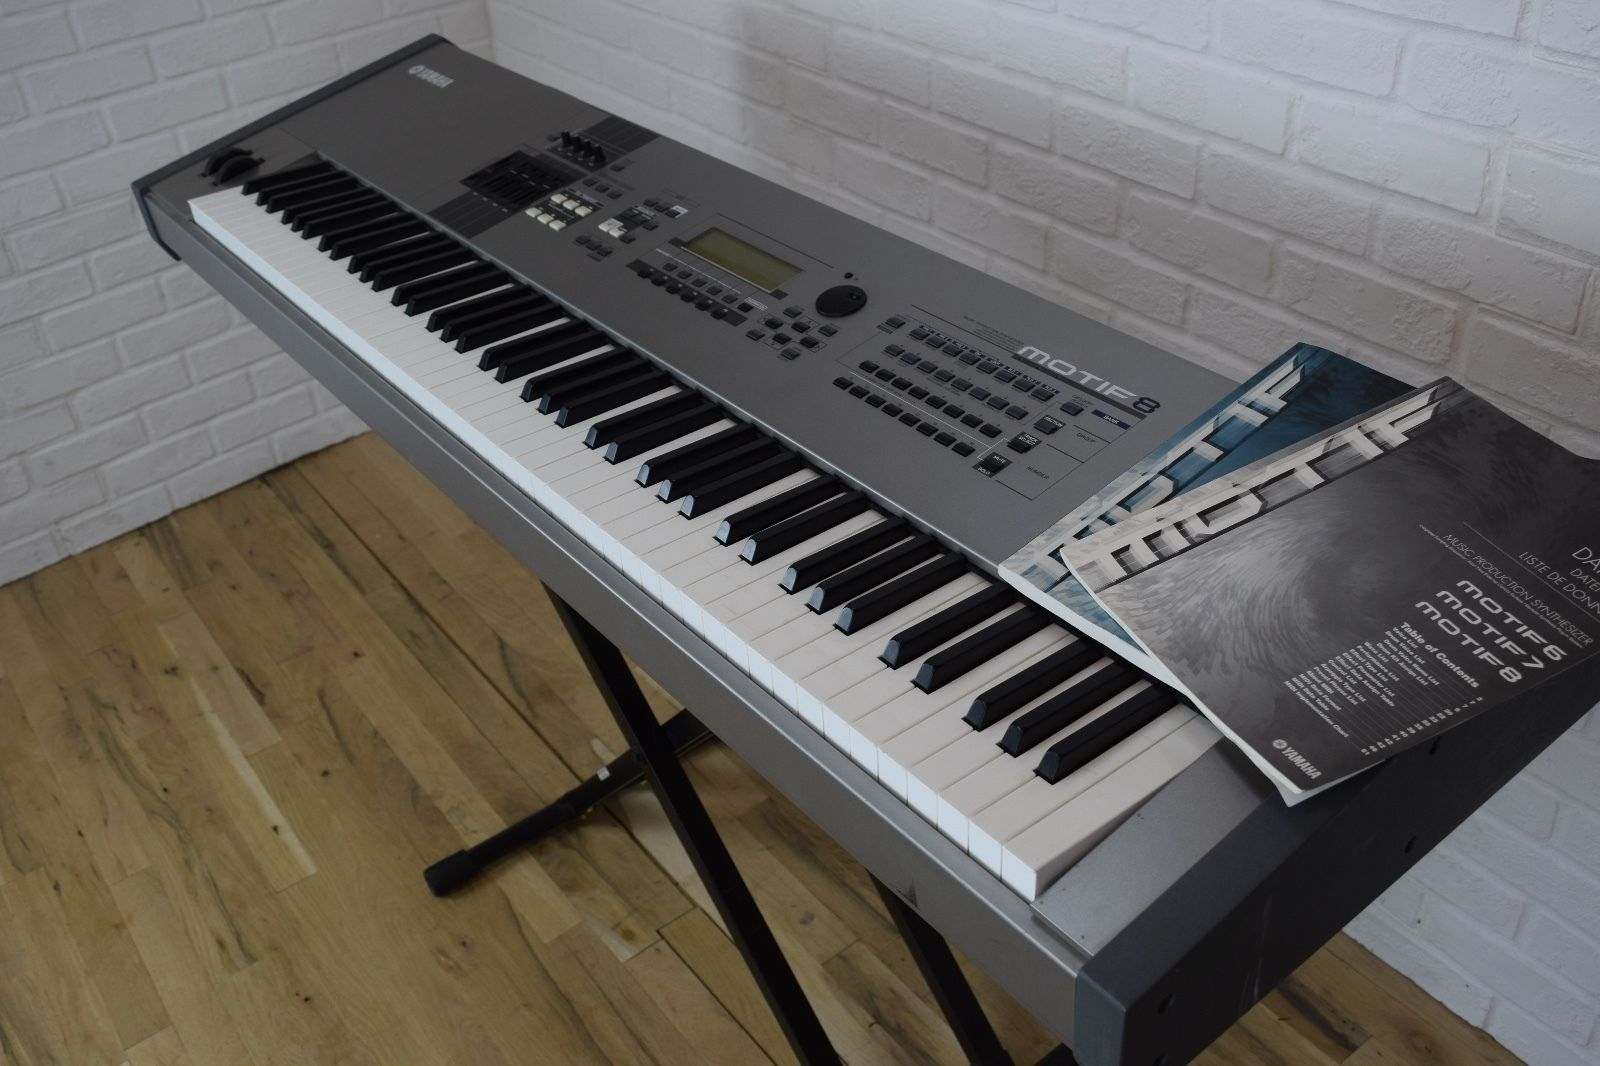 yamaha motif 8 keyboard synthesizer near mint used 88 key piano for sale common shopping in. Black Bedroom Furniture Sets. Home Design Ideas